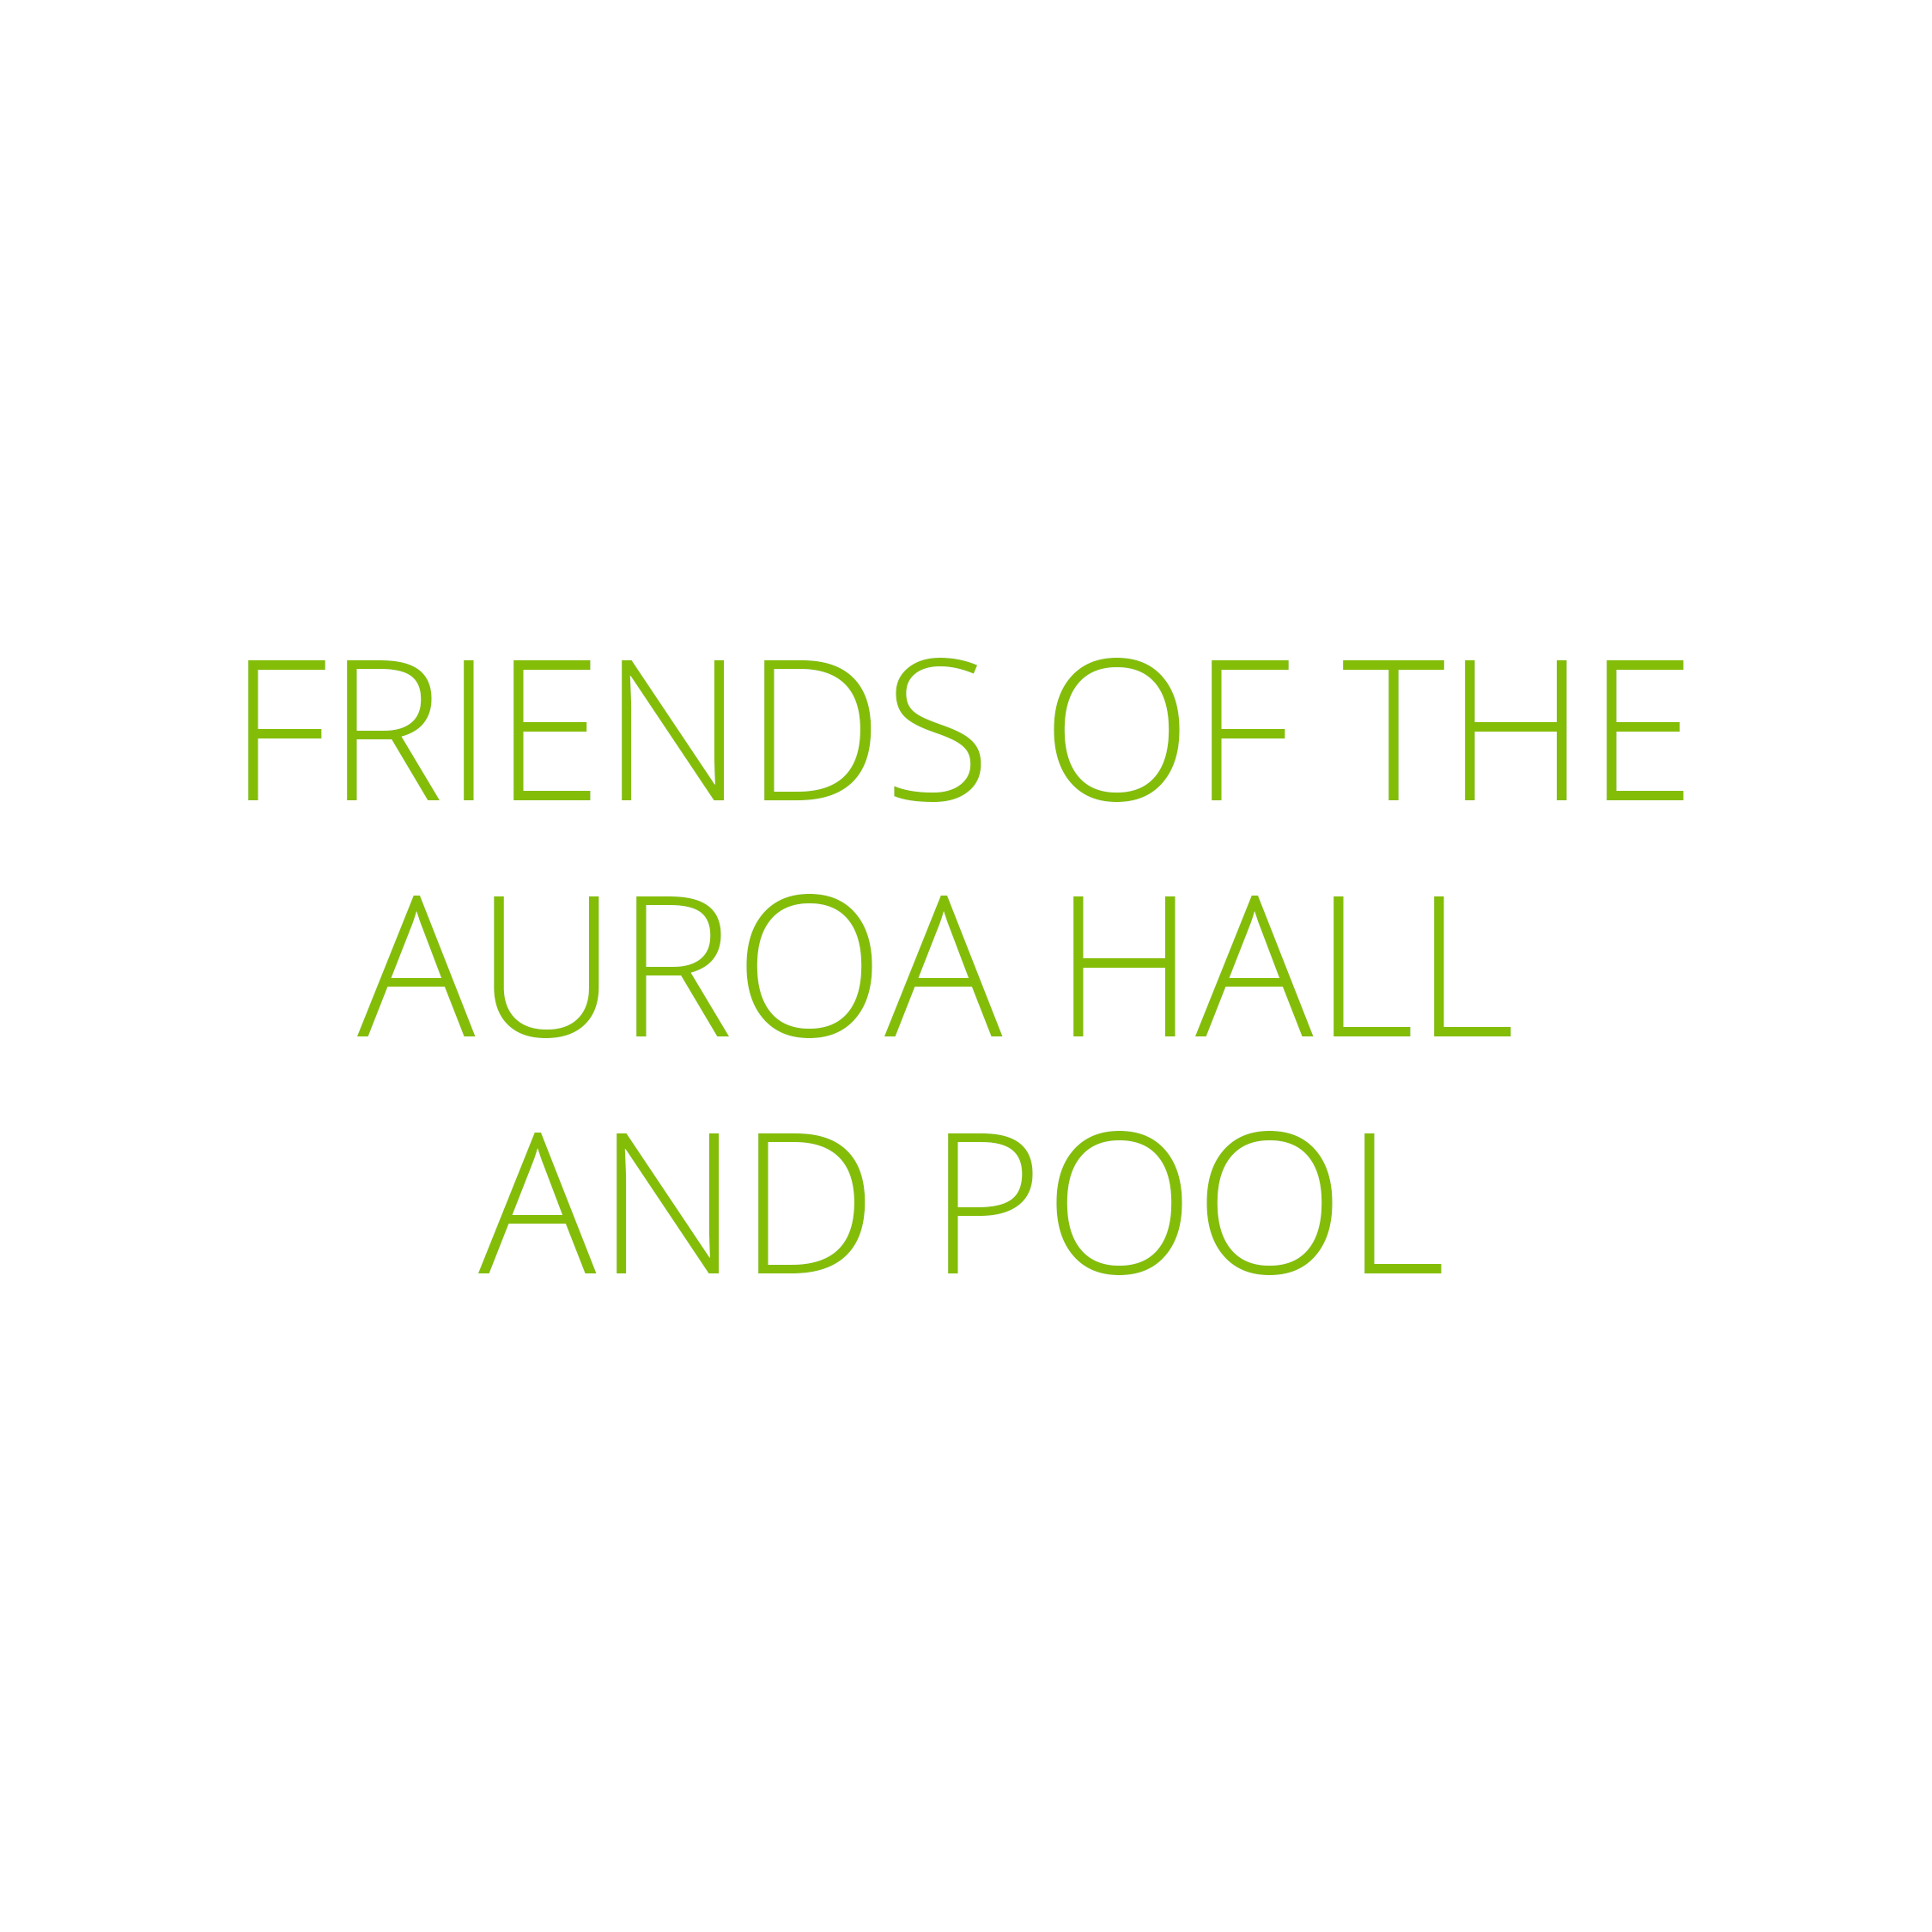 Friends of the Auroa Hall & Pool Text